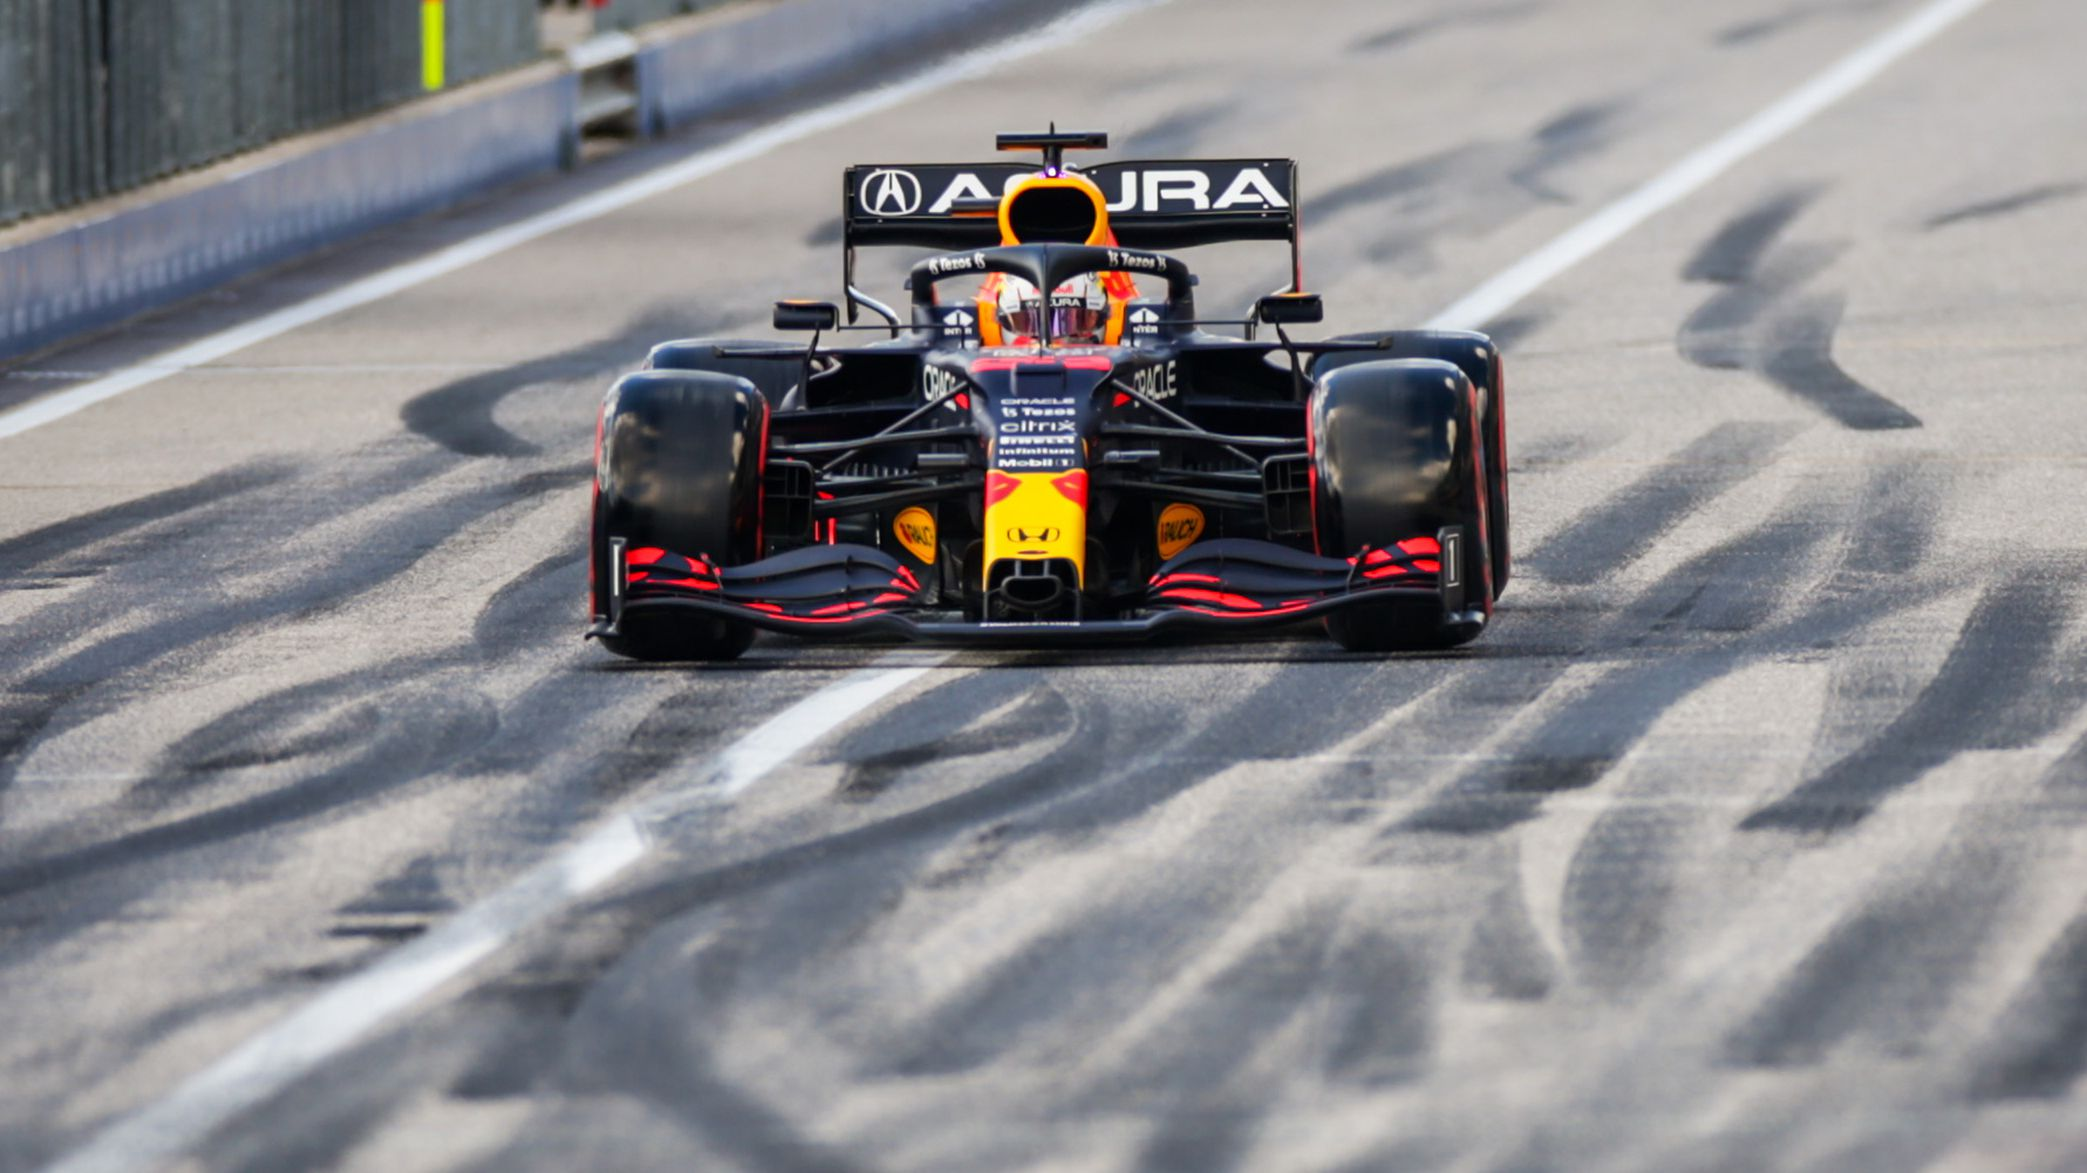 Max Verstappen of Red Bull Racing and The Netherlands  during qualifying ahead of the F1 Grand Prix of USA at Circuit of The Americas.